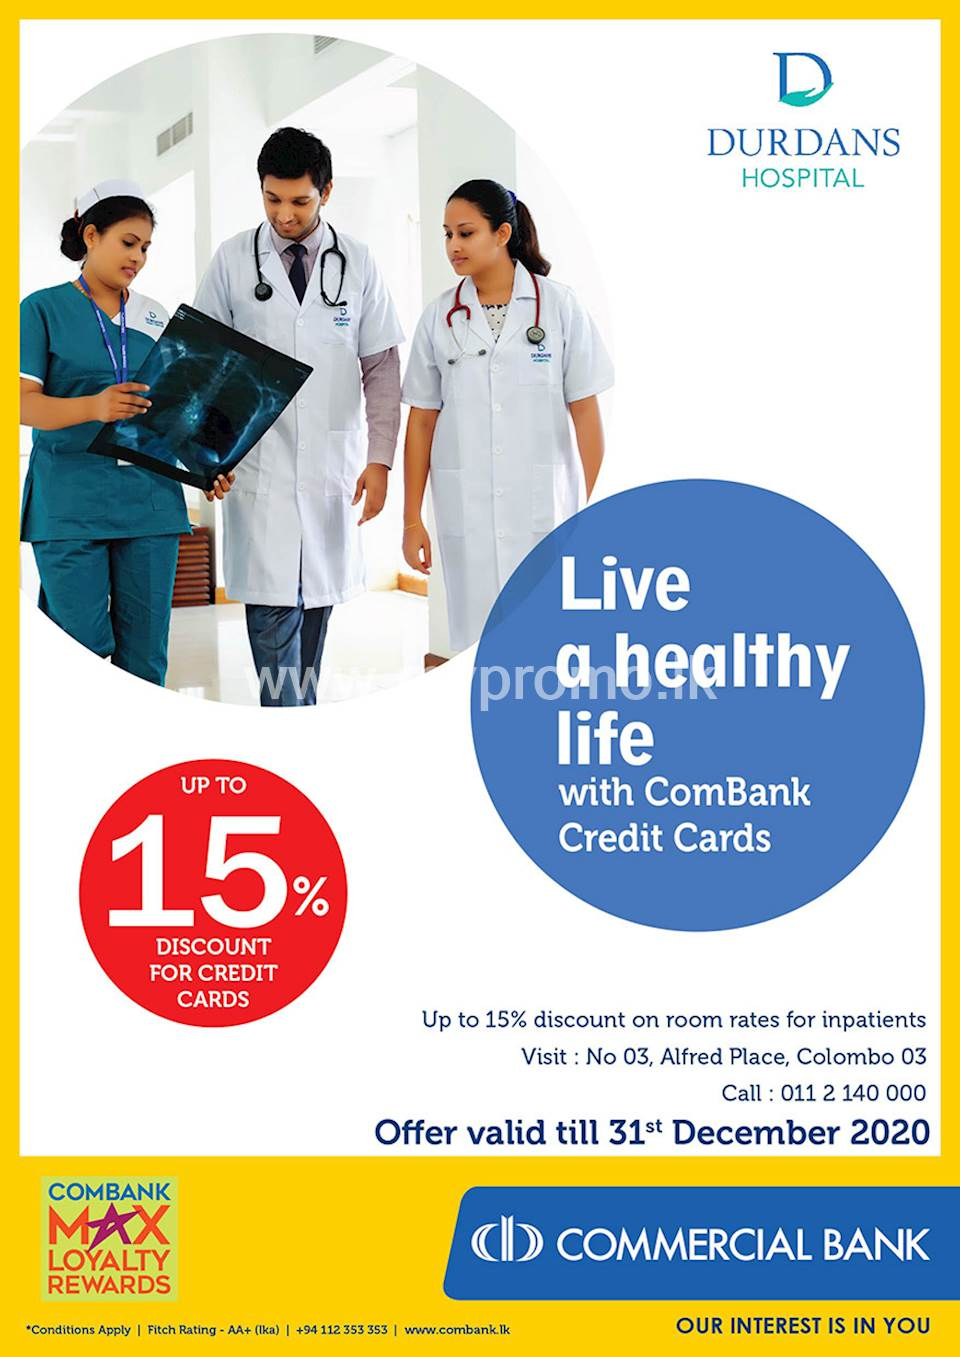 Up to 15 % discount with Combank credit cards at Durdans Hospital